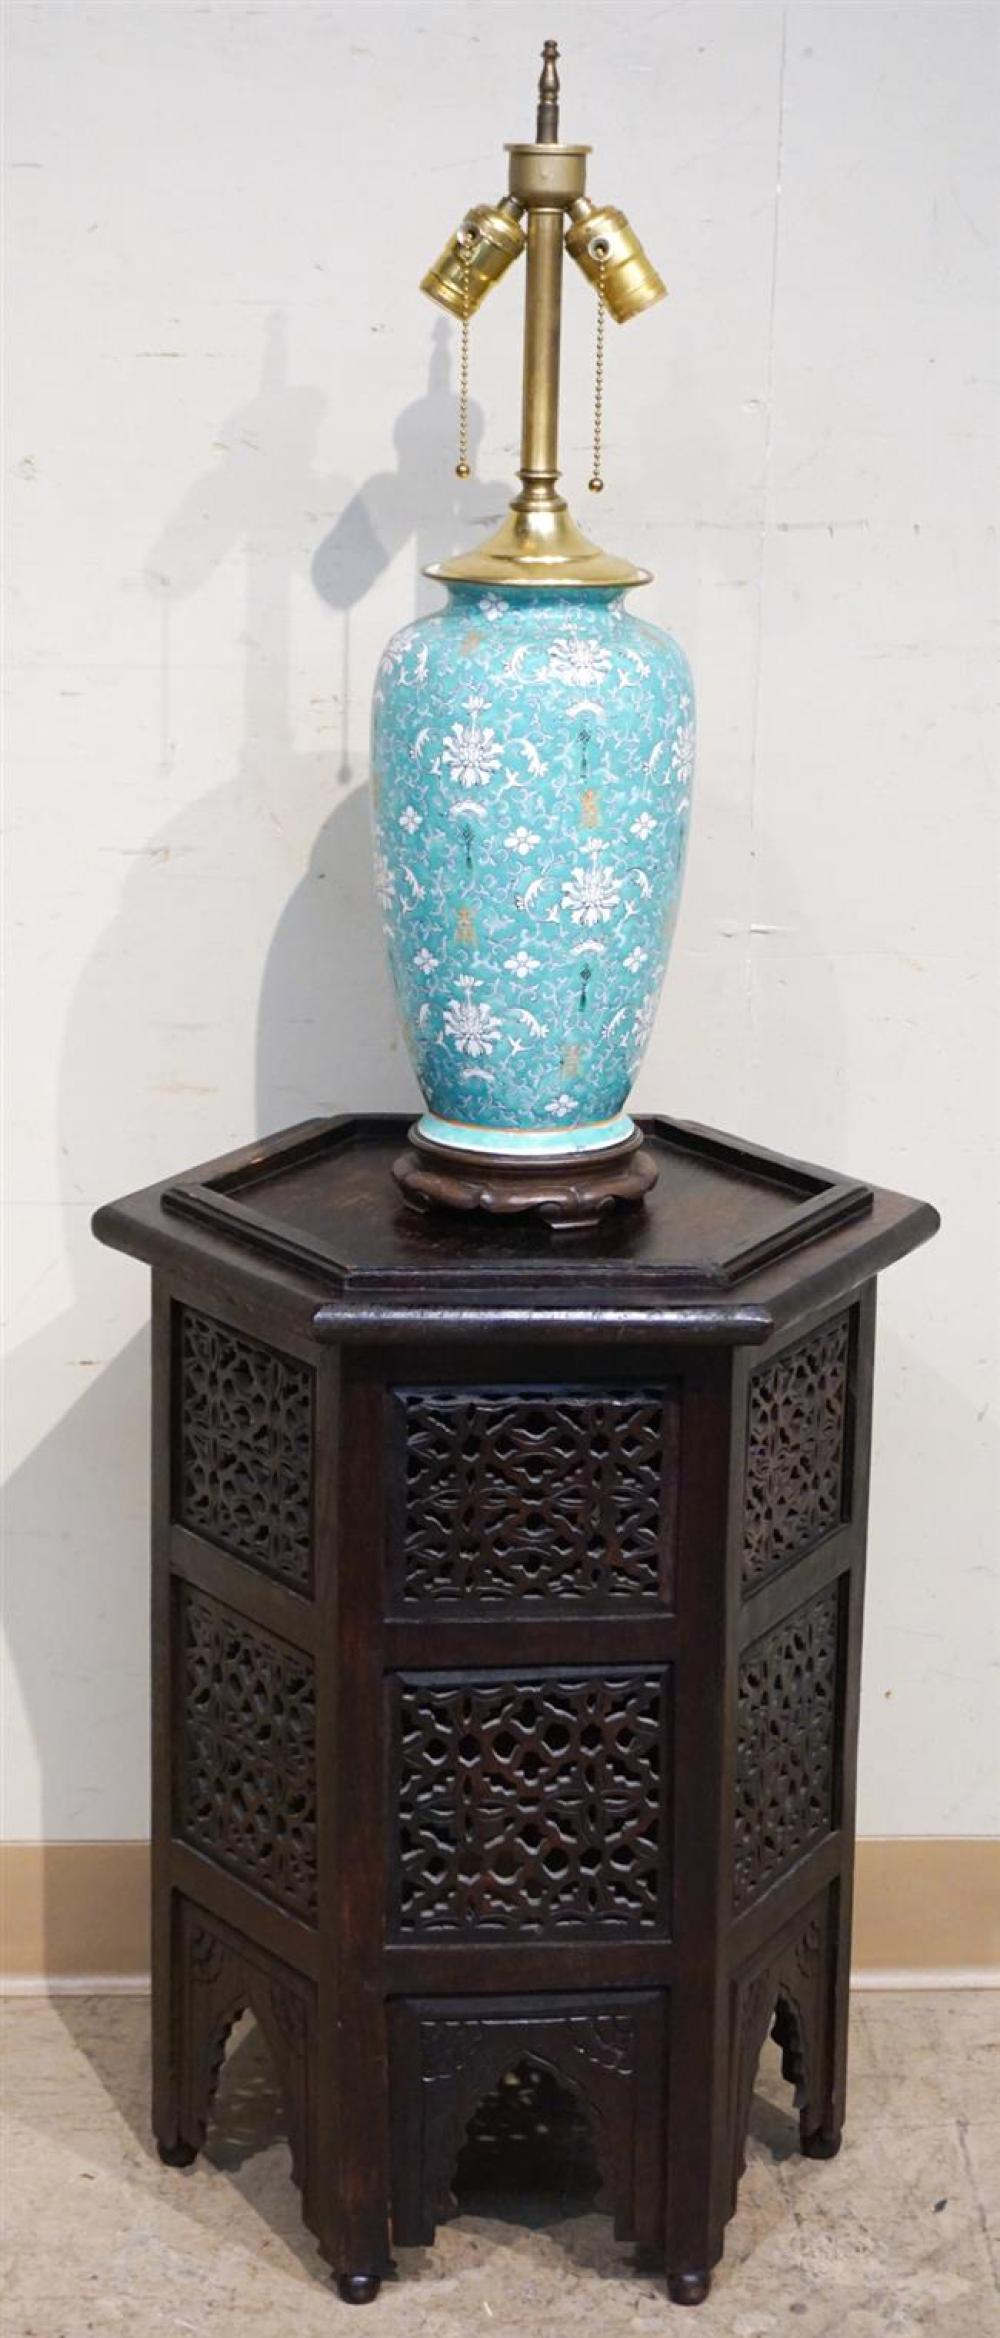 Chinese Turquoise Ground Porcelain Table Lamp with an Asian Pierced Wood Pedestal, Height of Lamp: 24 in; Height of Pedestal: 23 in